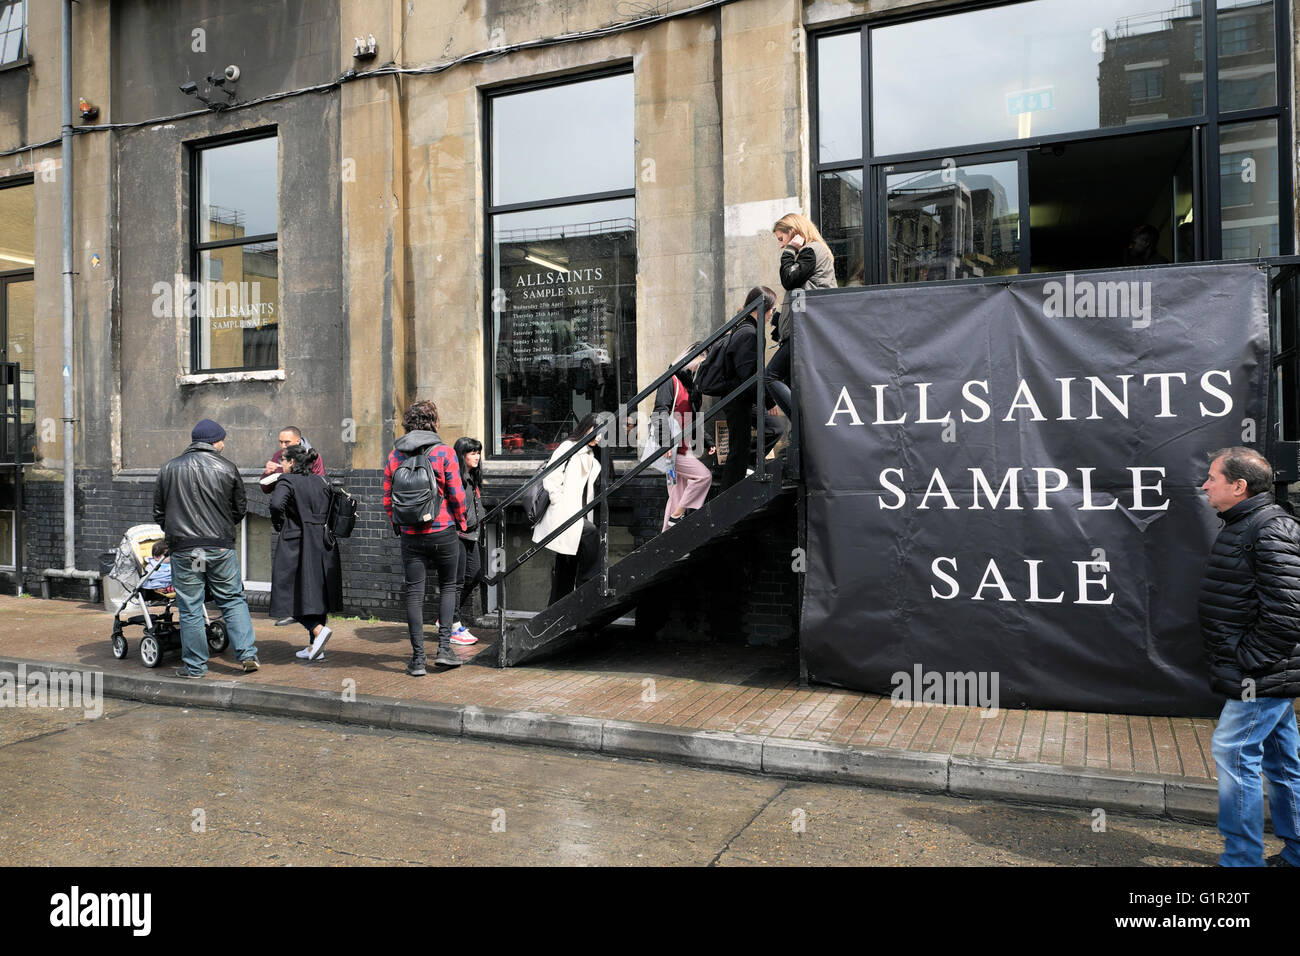 People shopping at allsaints sample sale in shoreditch warehouse.